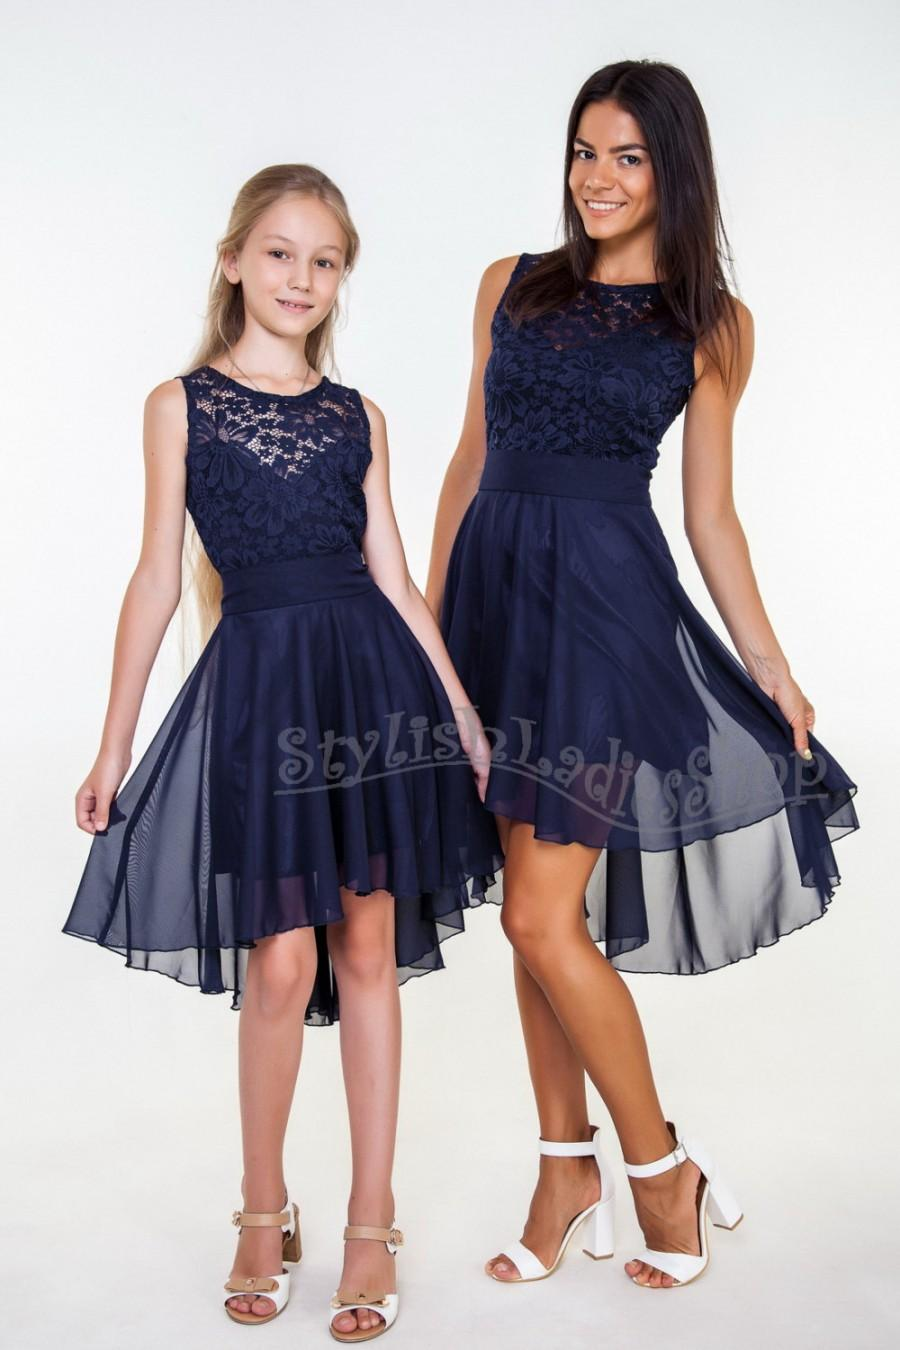 Wedding Navy Blue Lace Bridesmaid Dresses navy blue bridesmaid dress lace short chiffon cocktail brides